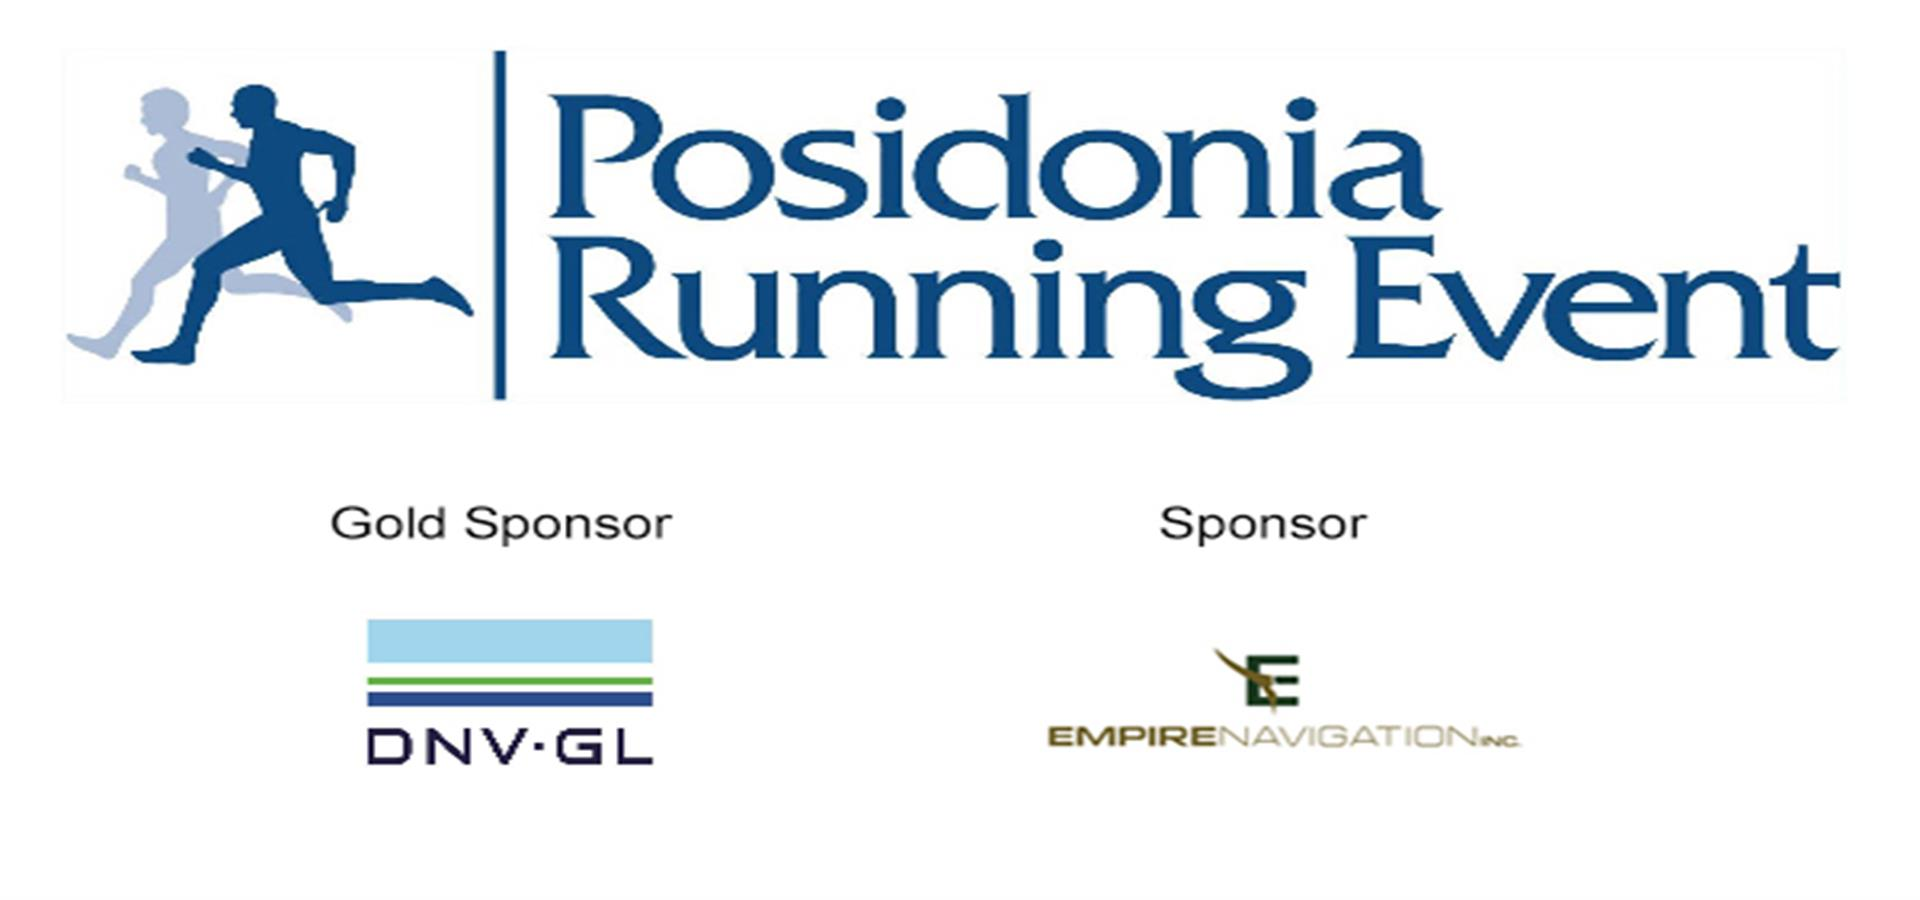 Posidonia Running Event